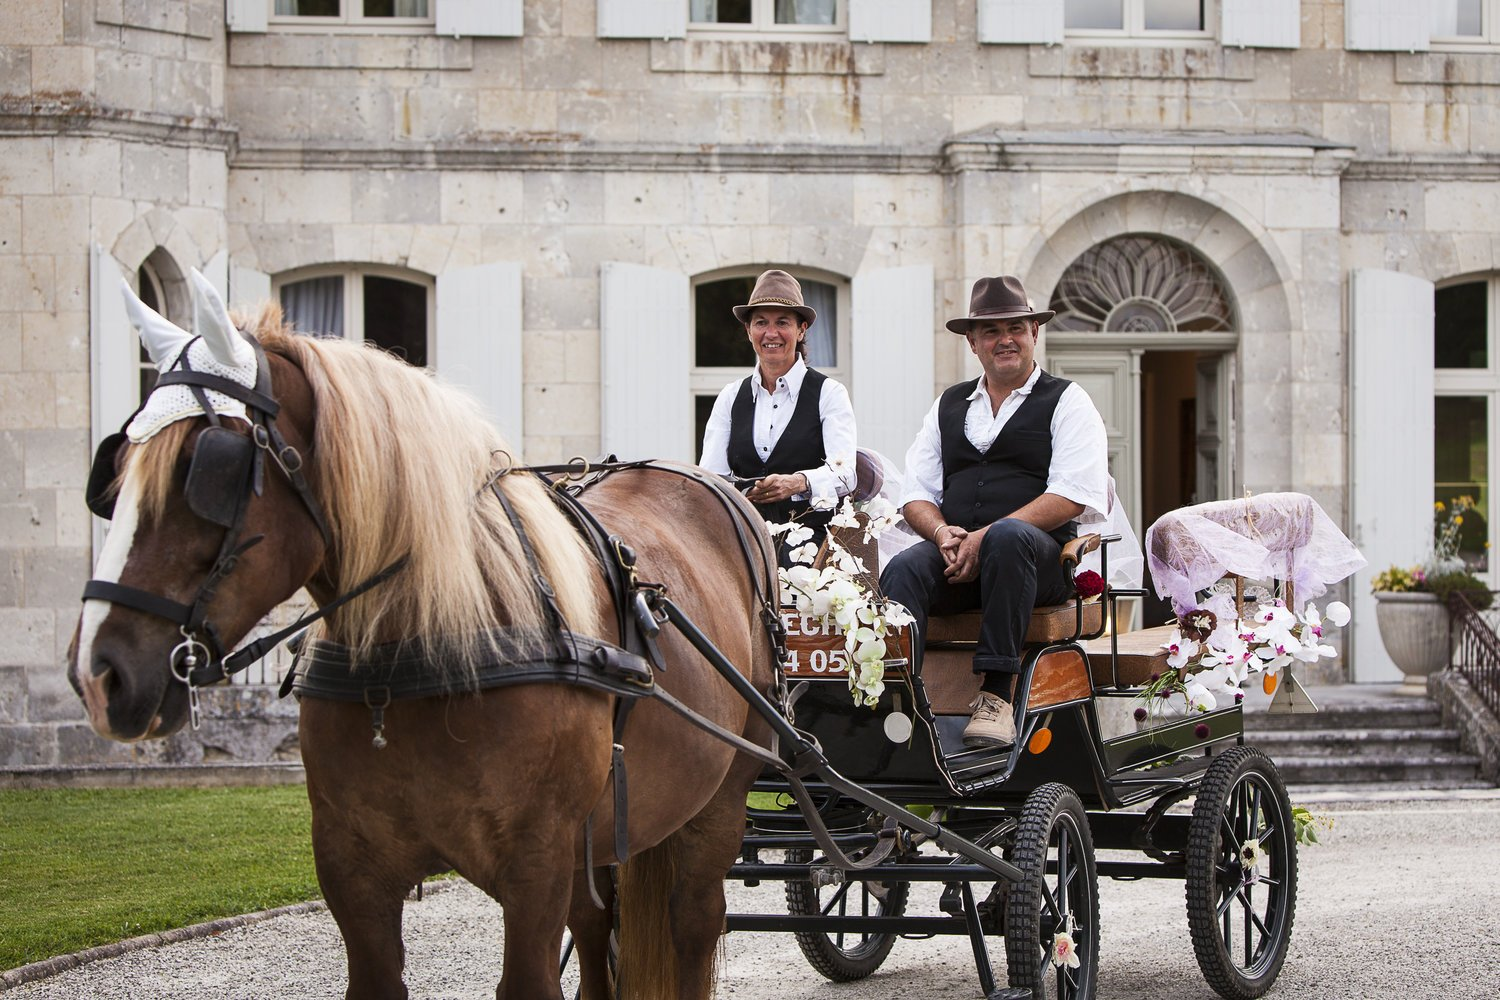 Picturesque Fairytale Chateau - French Wedding Venues